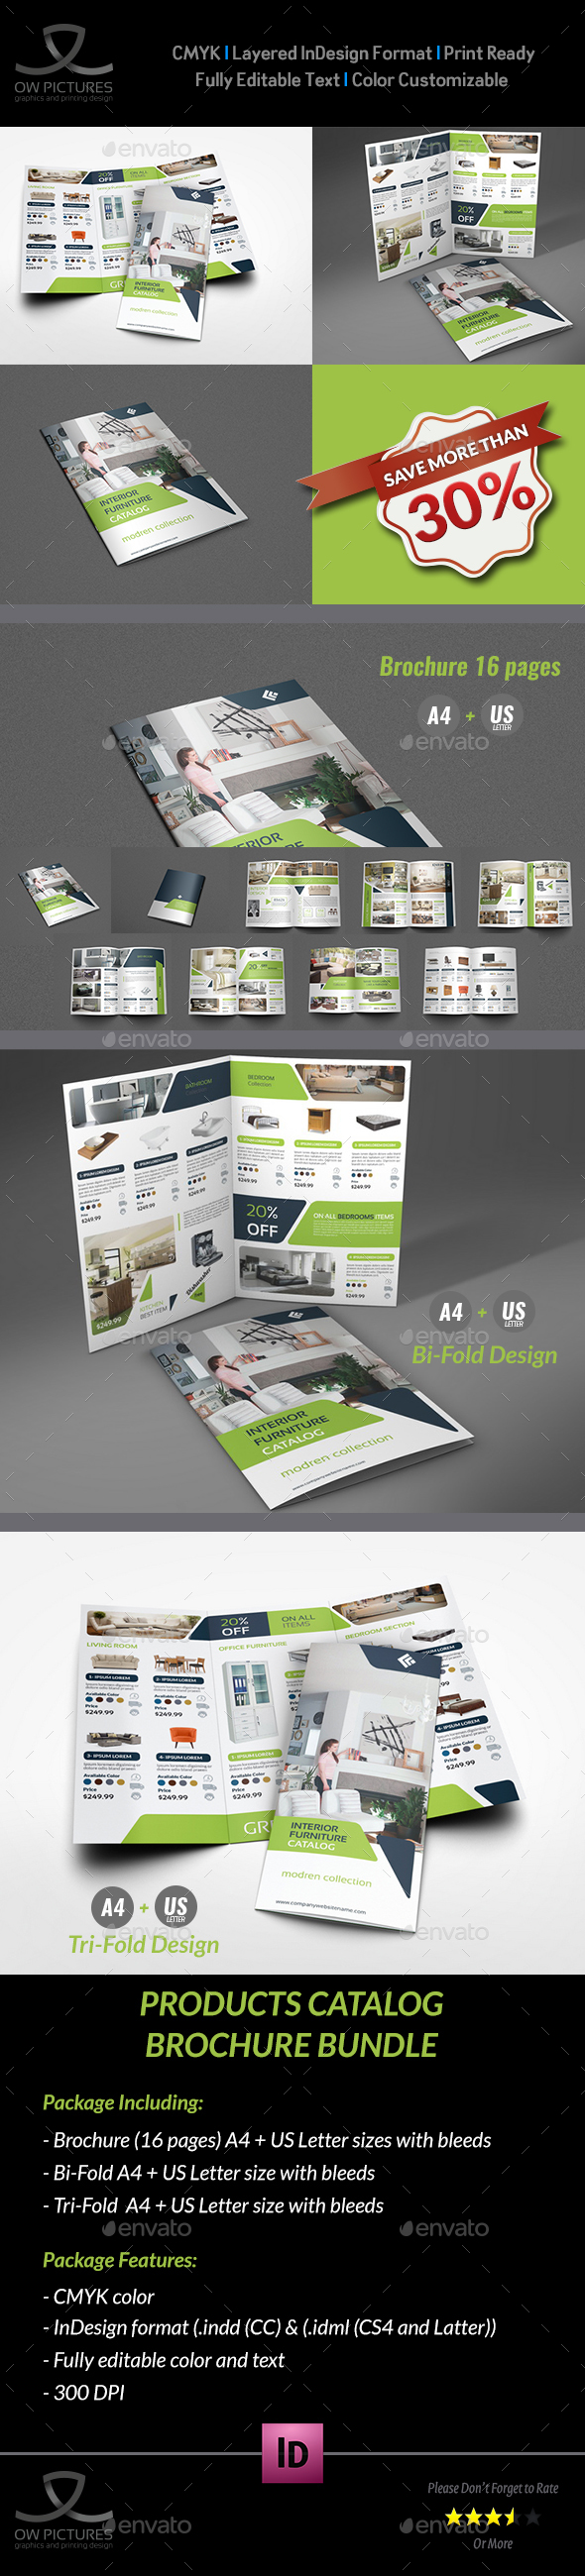 Products Catalog Brochure Bundle Vol.2 - Catalogs Brochures